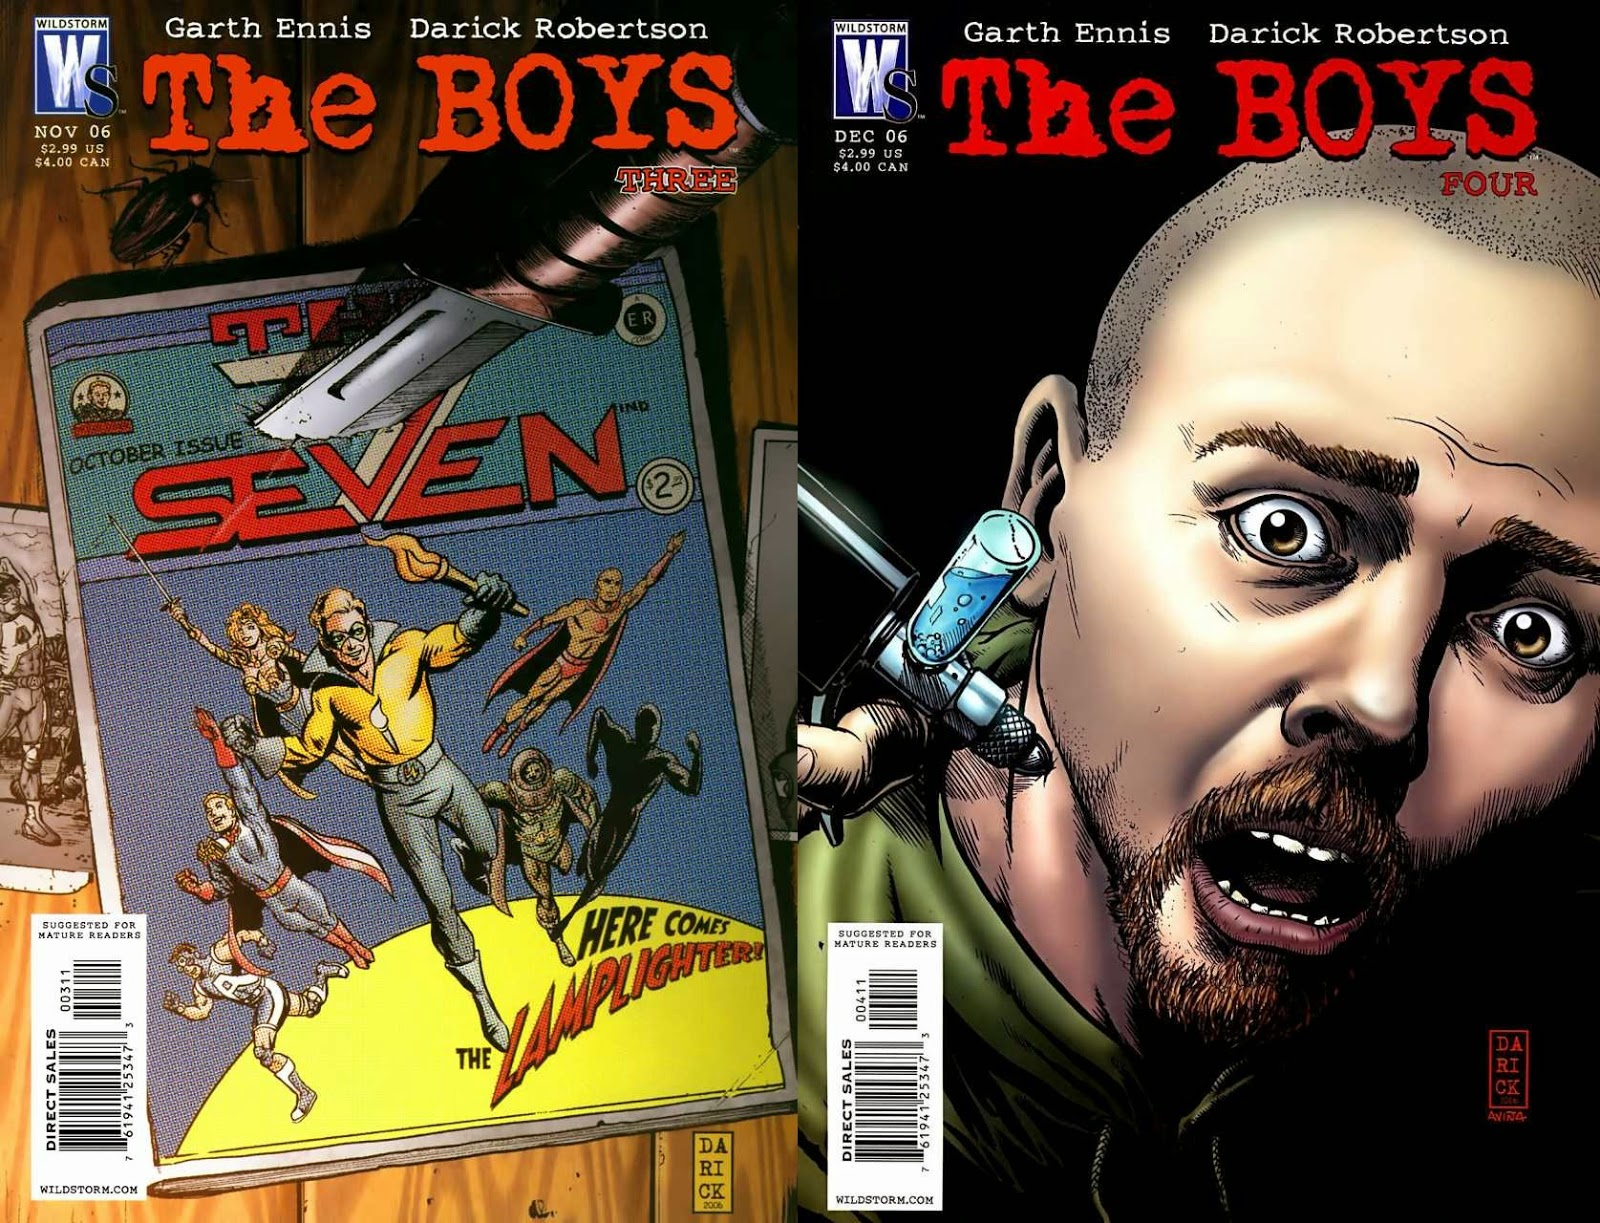 The Boys # 3 4 - Garth Ennis Darick Robertson